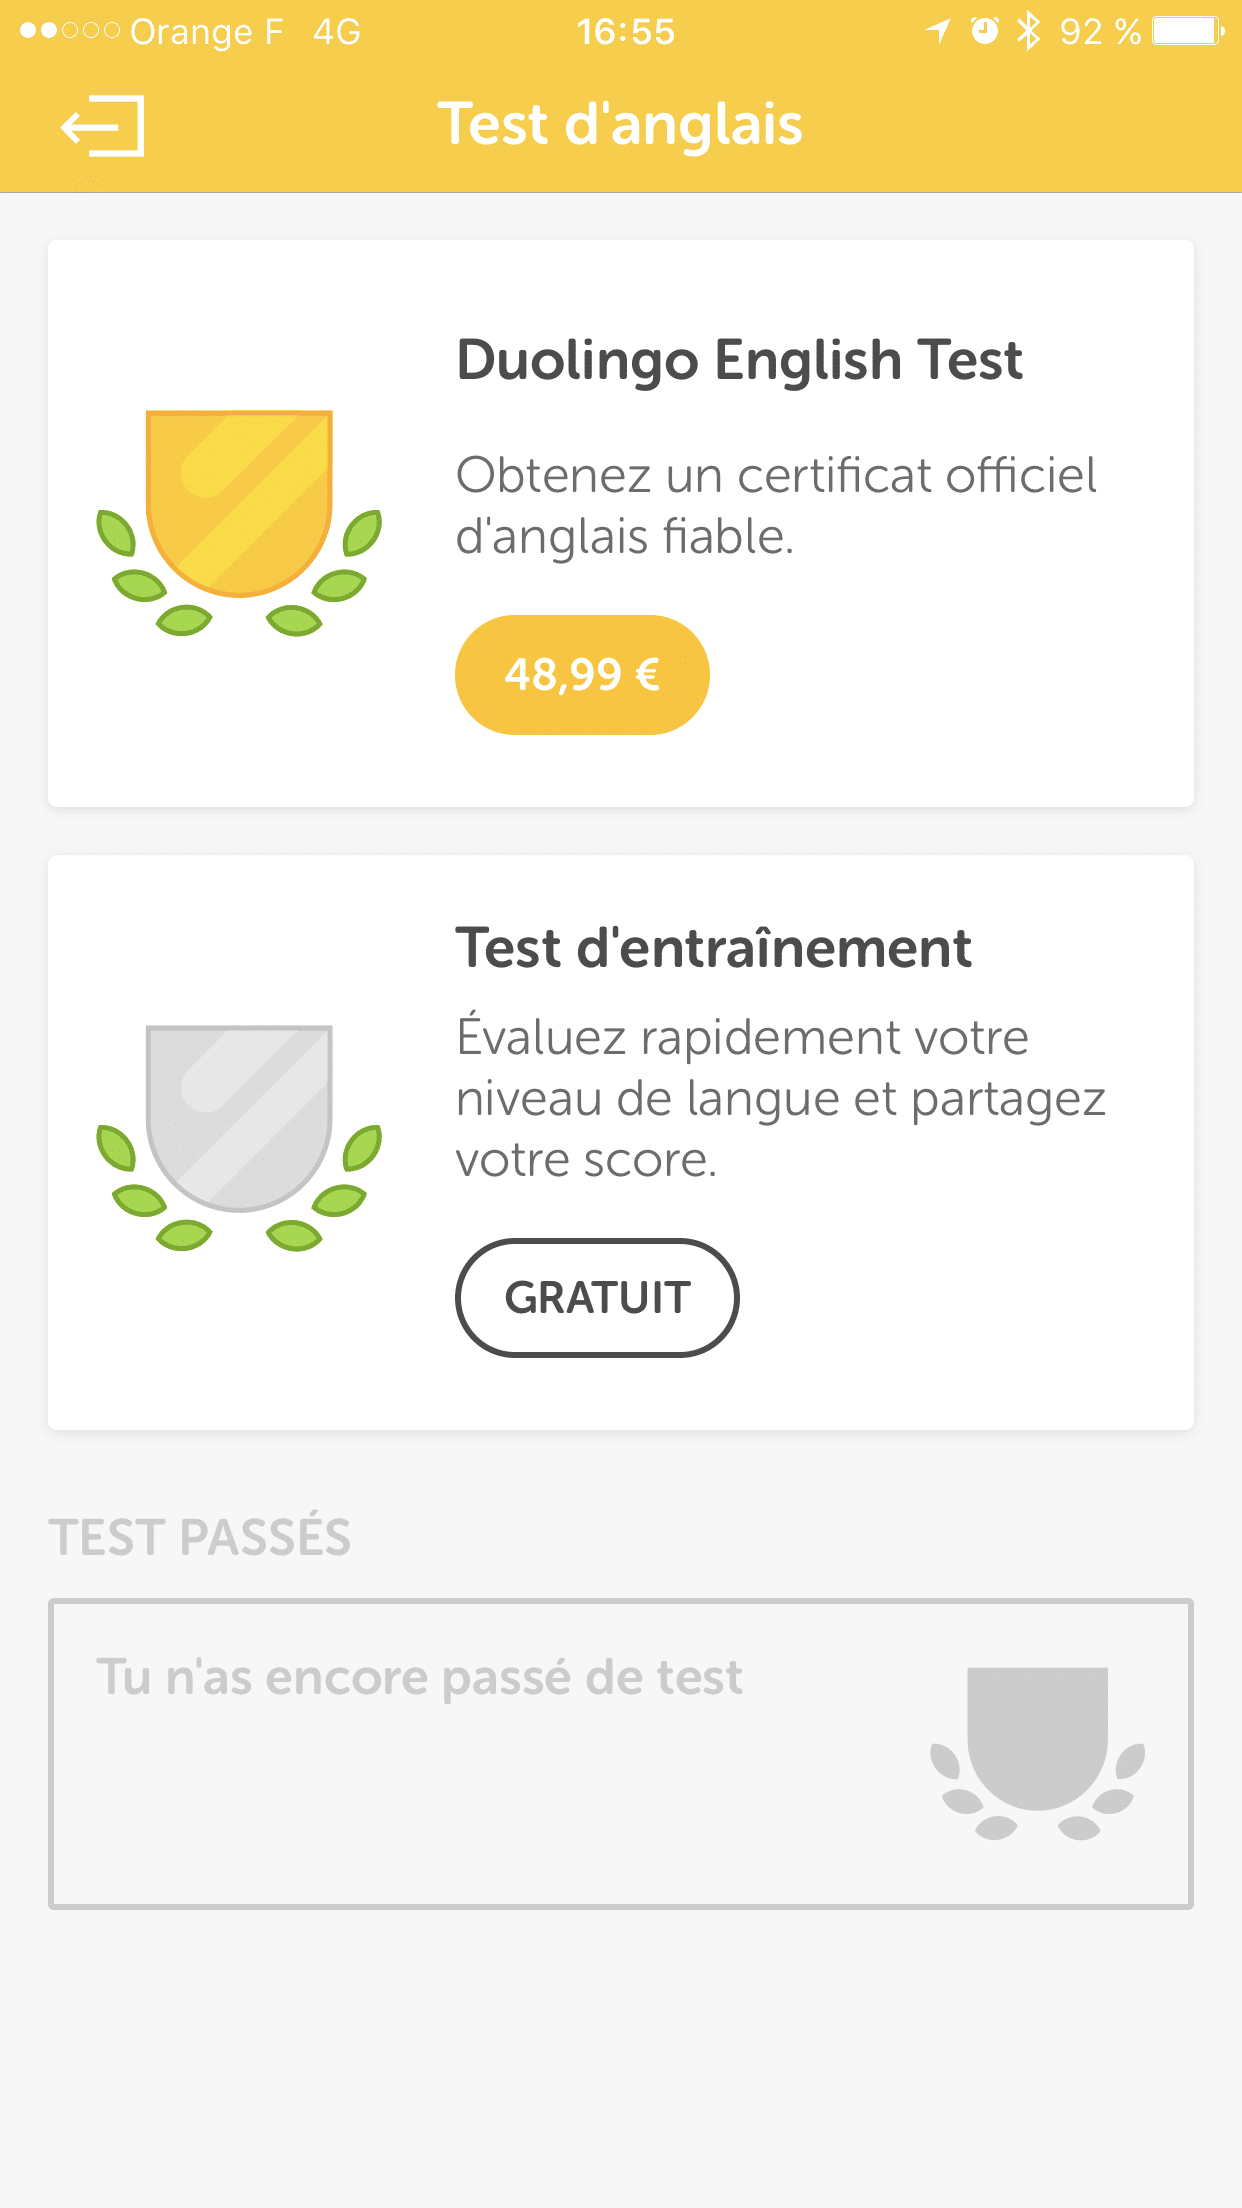 Duolingo-English-test